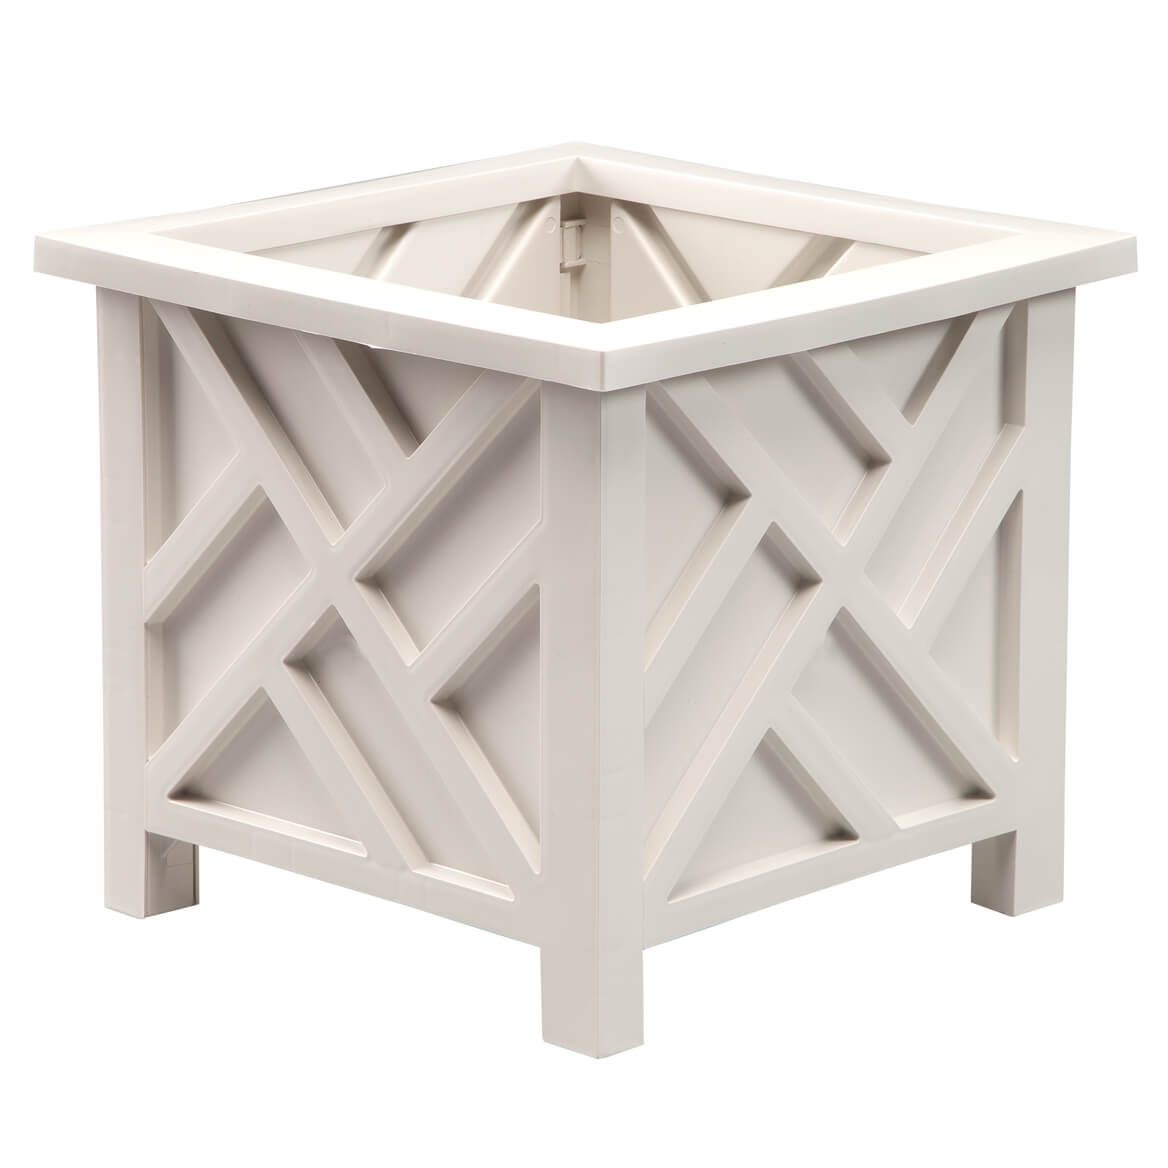 Miles Kimball Chippendale Planter for Potted Plants, White by Miles Kimball